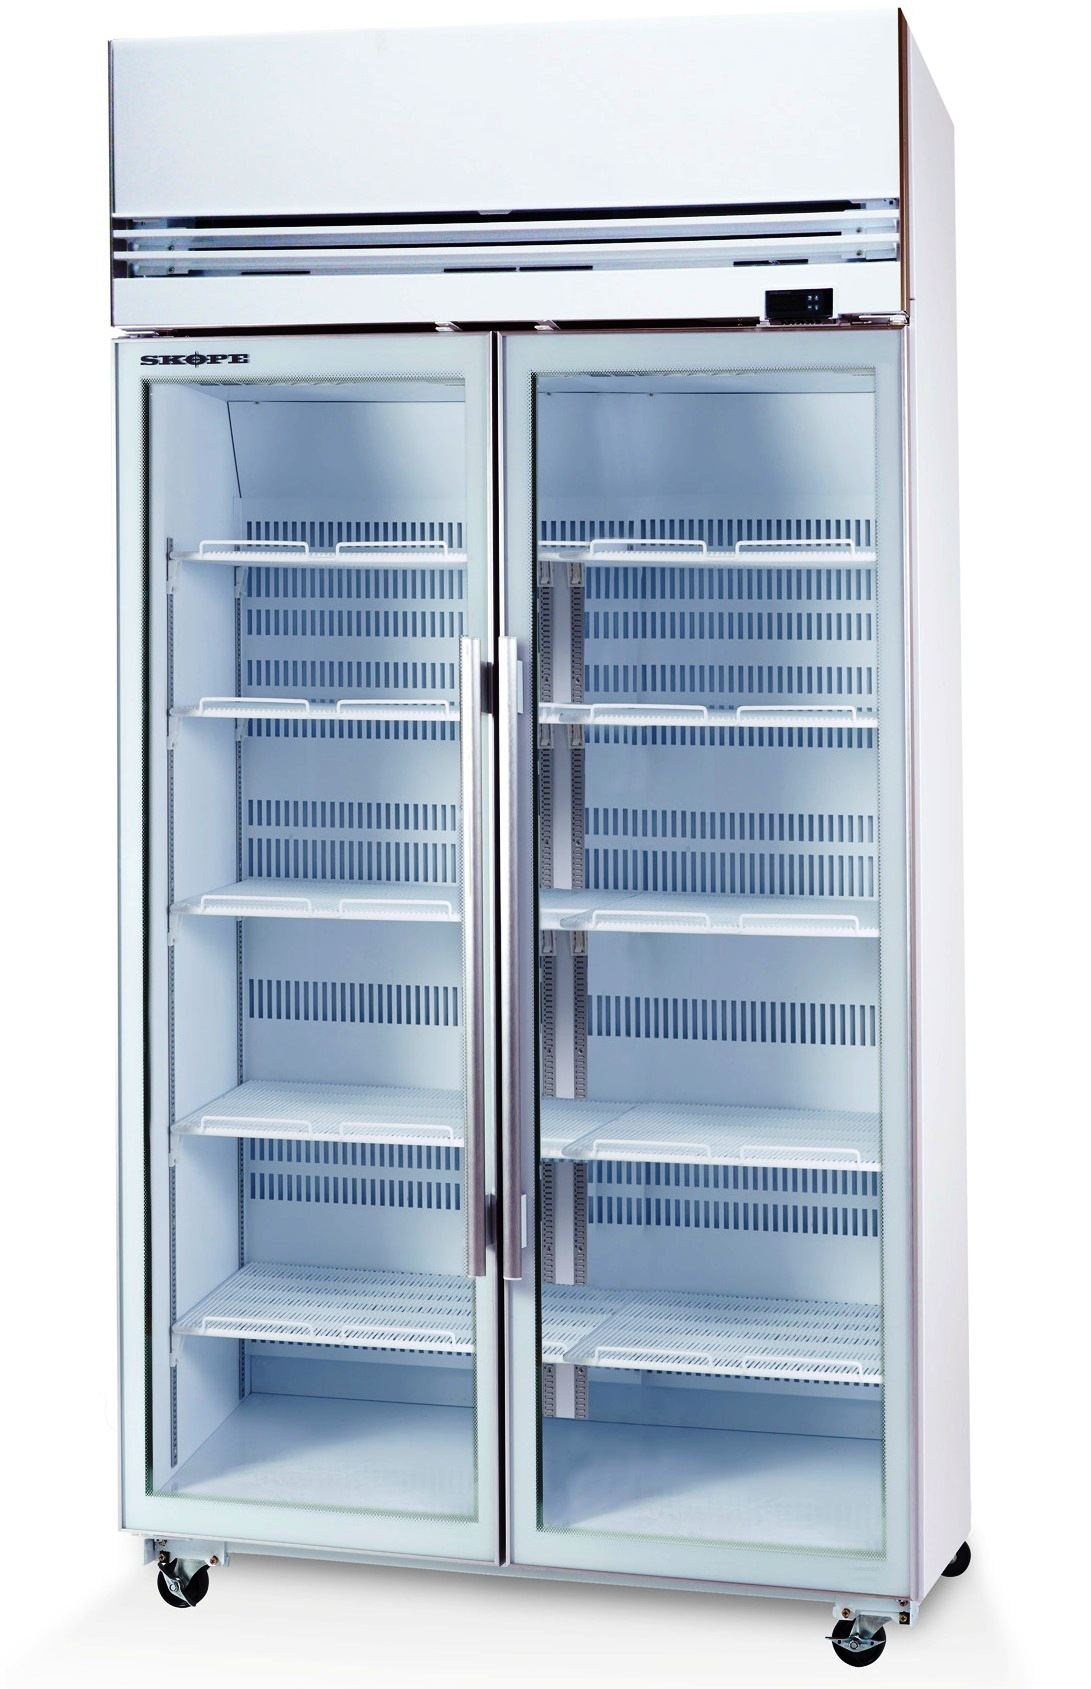 2 glass door freezer